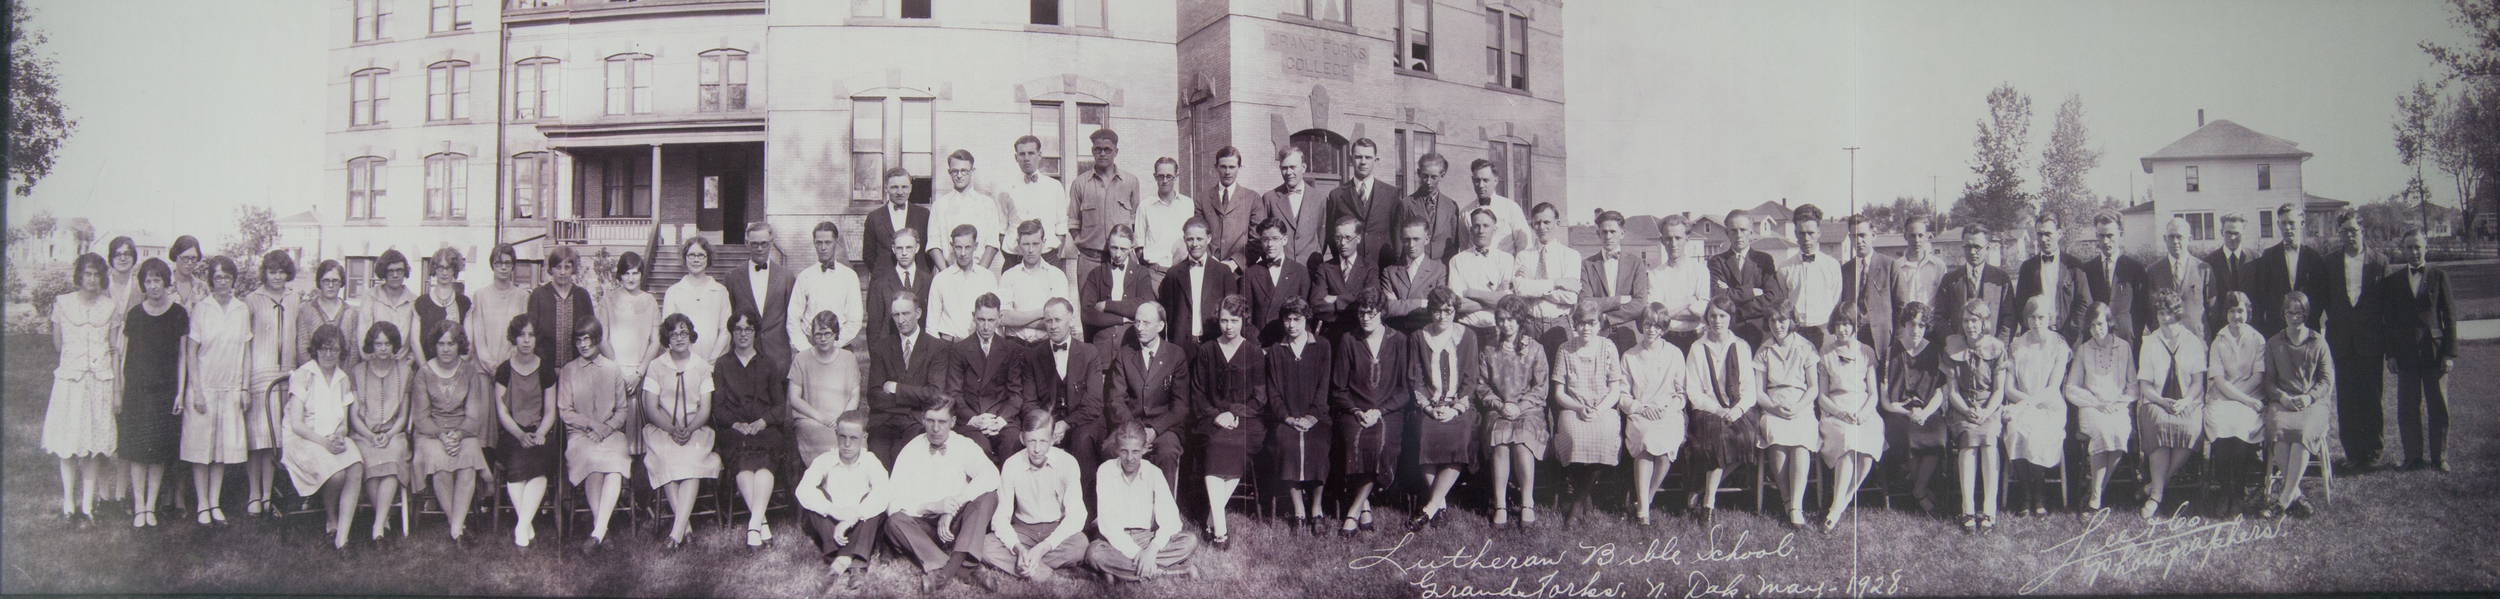 The Lutheran Bible School Class of 1928 saw a significant rise in student enrollment in the High School department. Later, this department would become Hillcrest Academy.